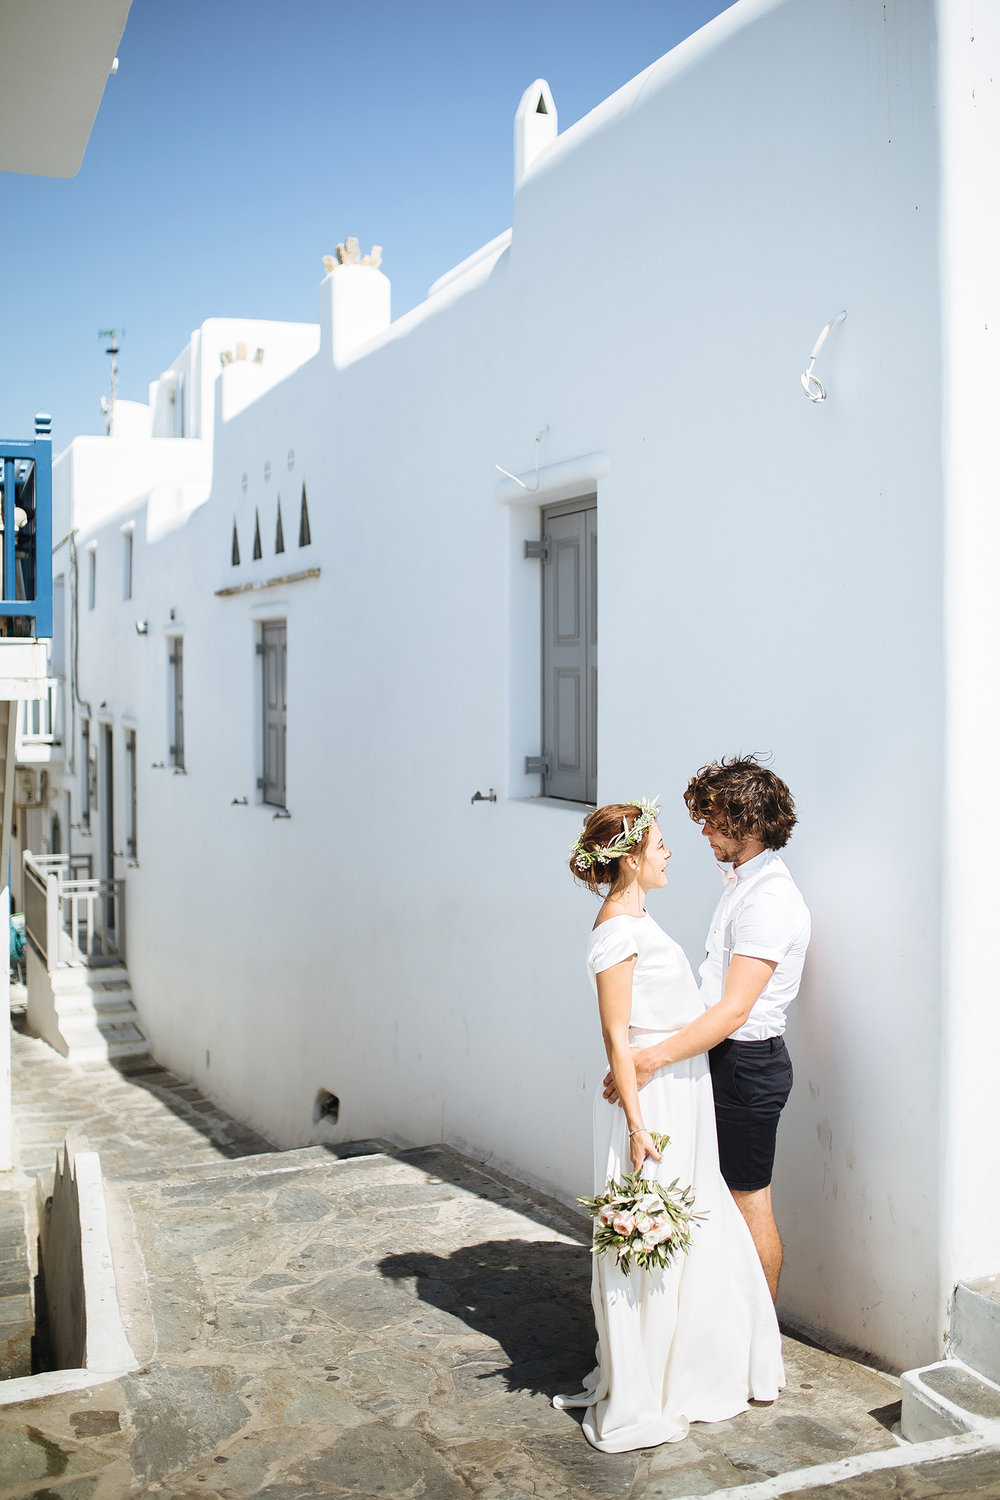 DESTINATION MYKONOS VILLA WEDDING PHOTOGRAPHY00117.JPG